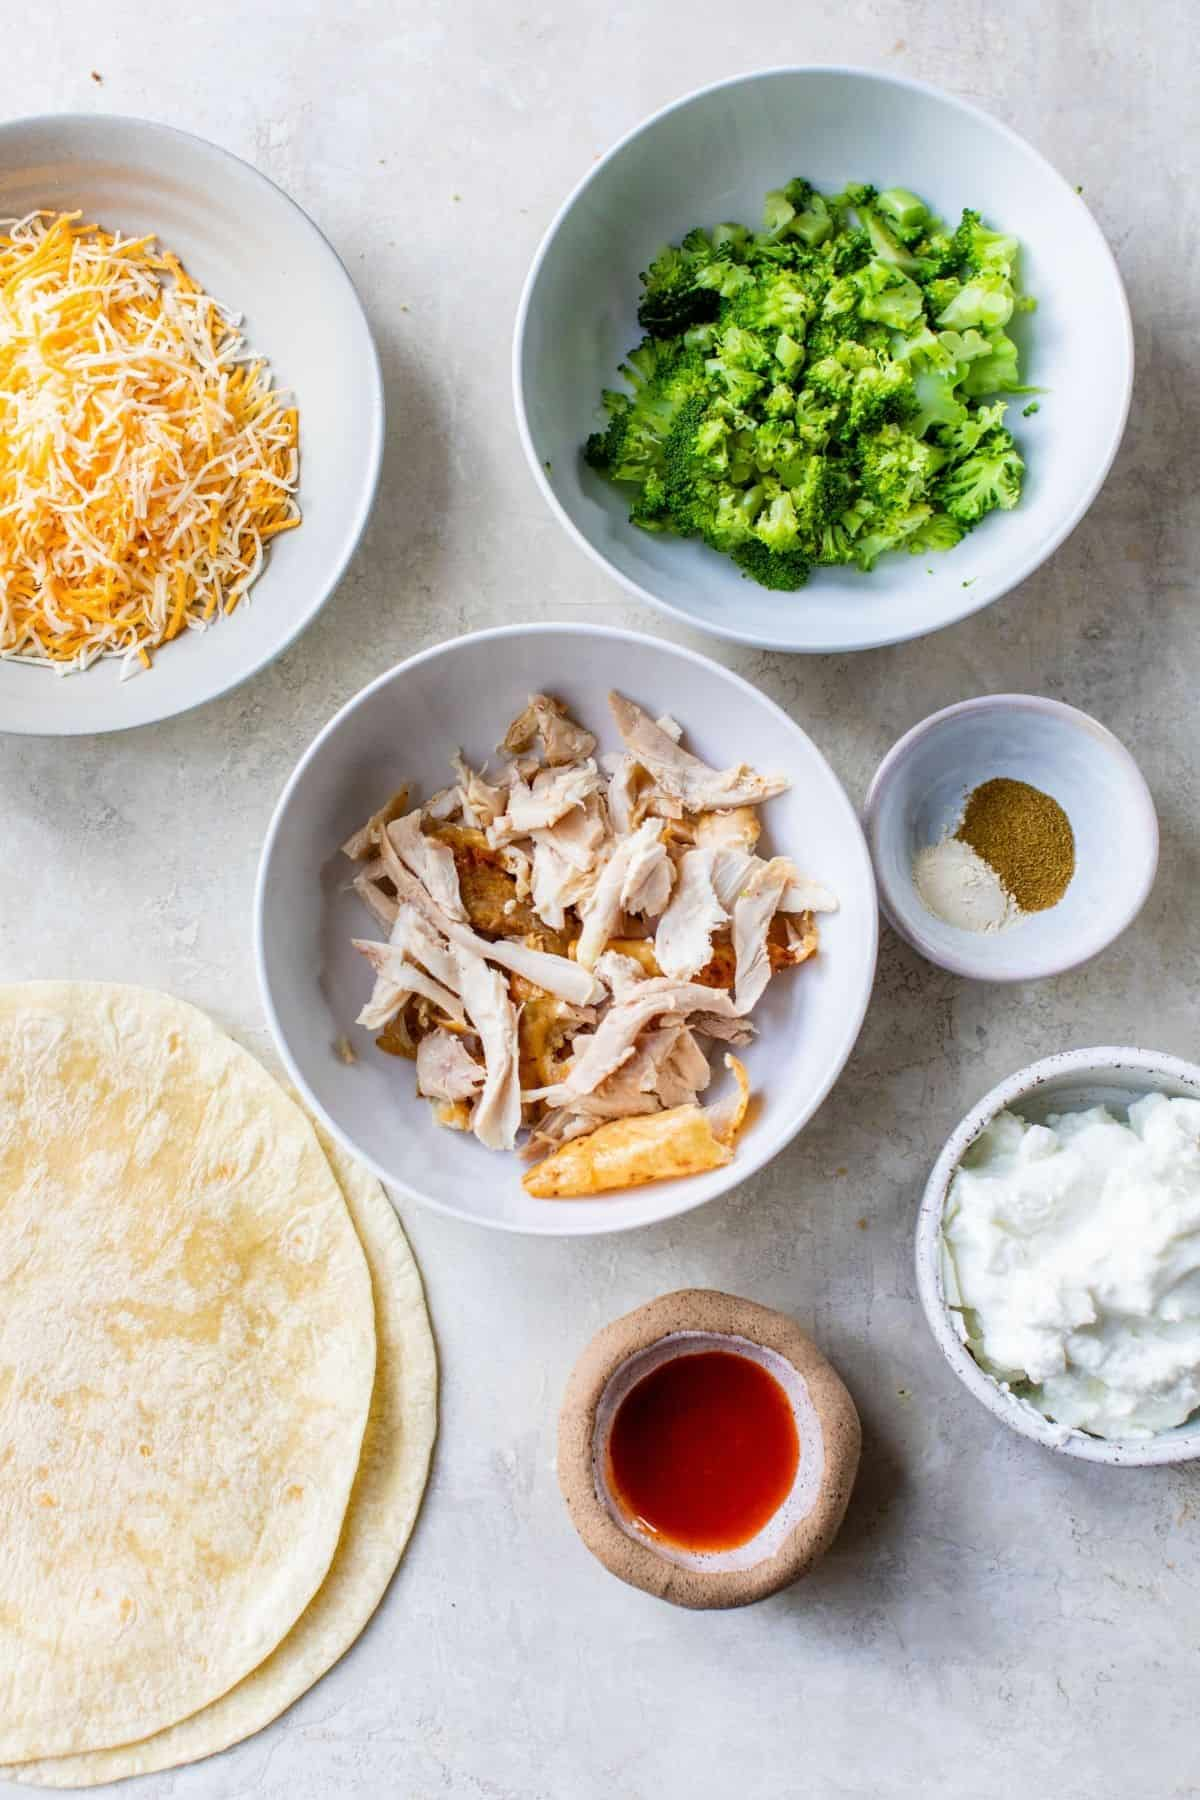 ingredients for chicken and broccoli quesadillas divided into small bowls